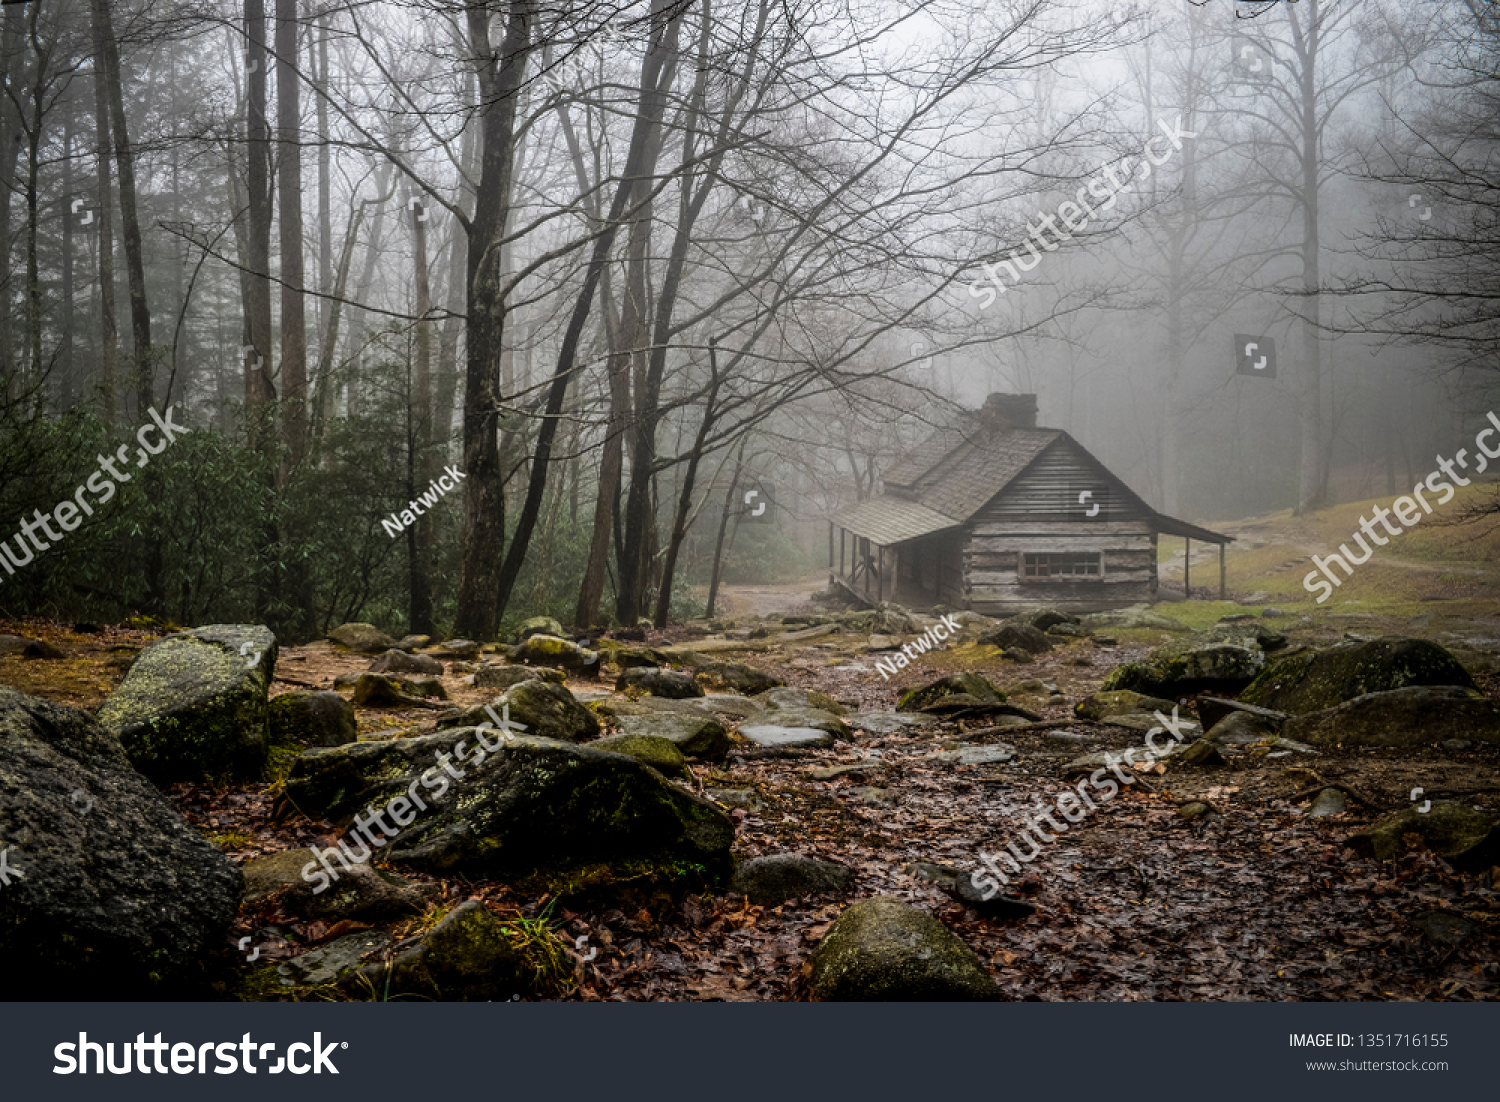 Old log cabin in the woods. #1351716155